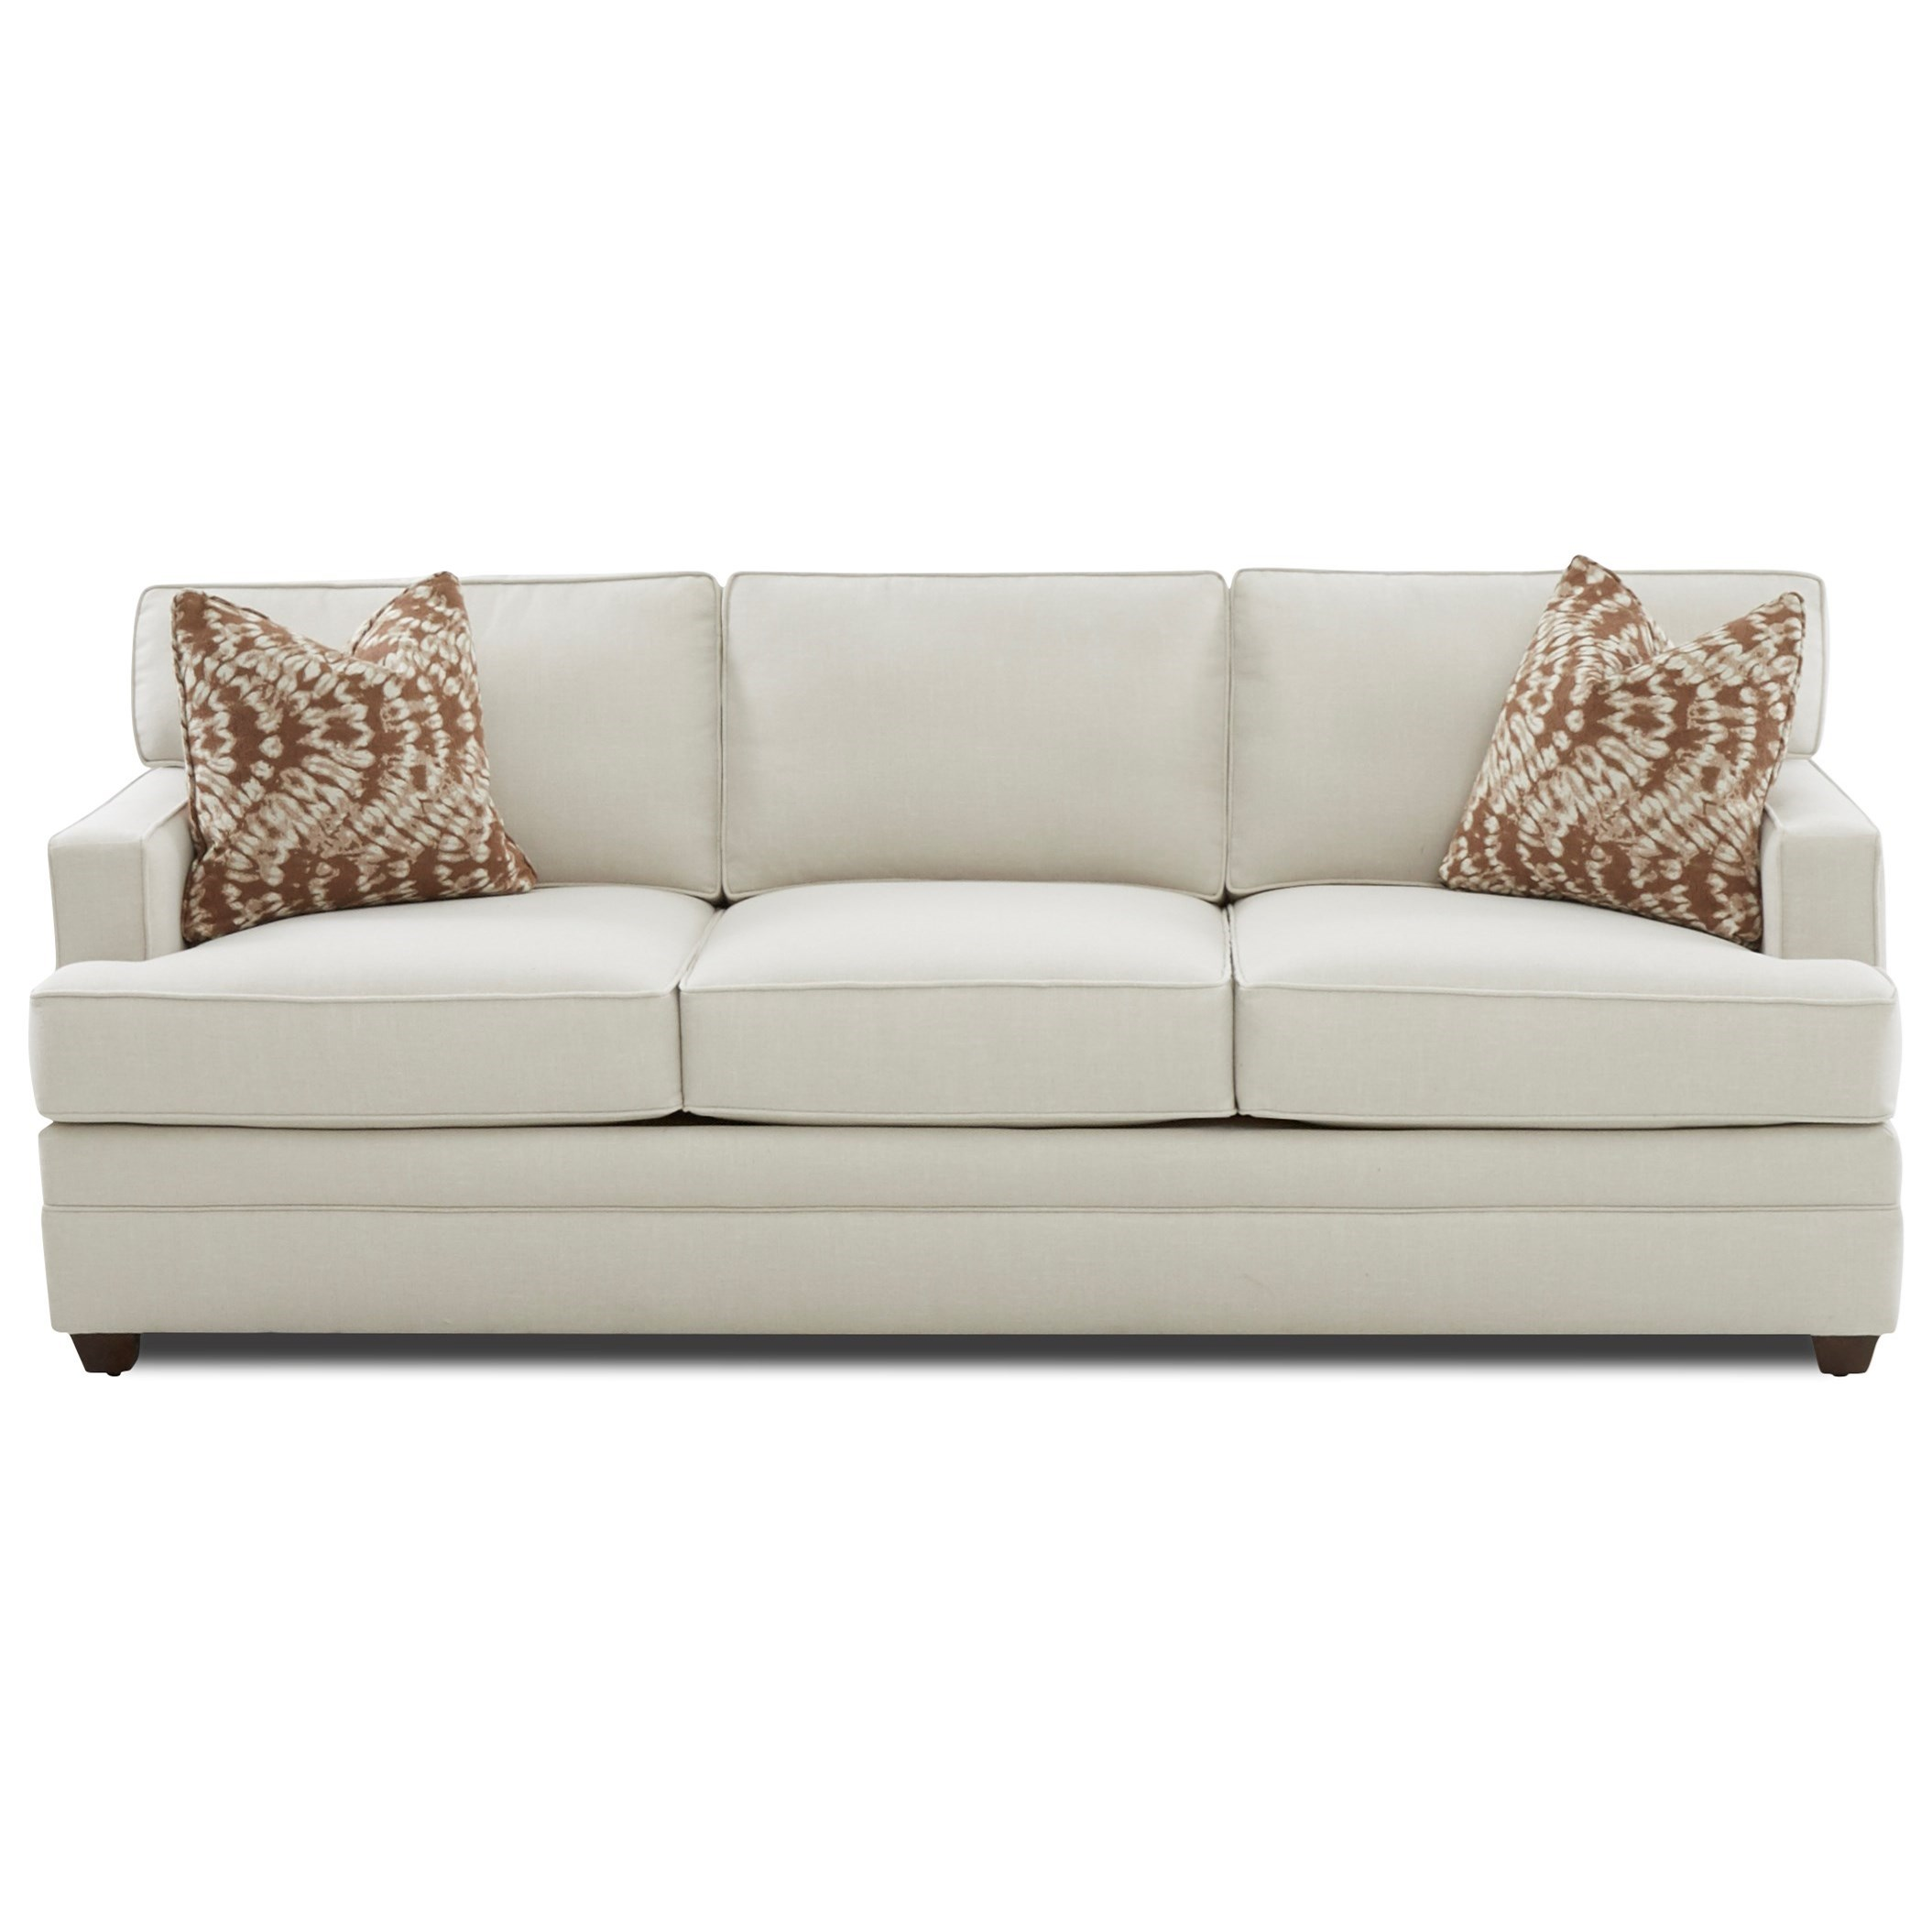 Contemporary Track Arm Sofa Sleeper with Innerspring Mattress